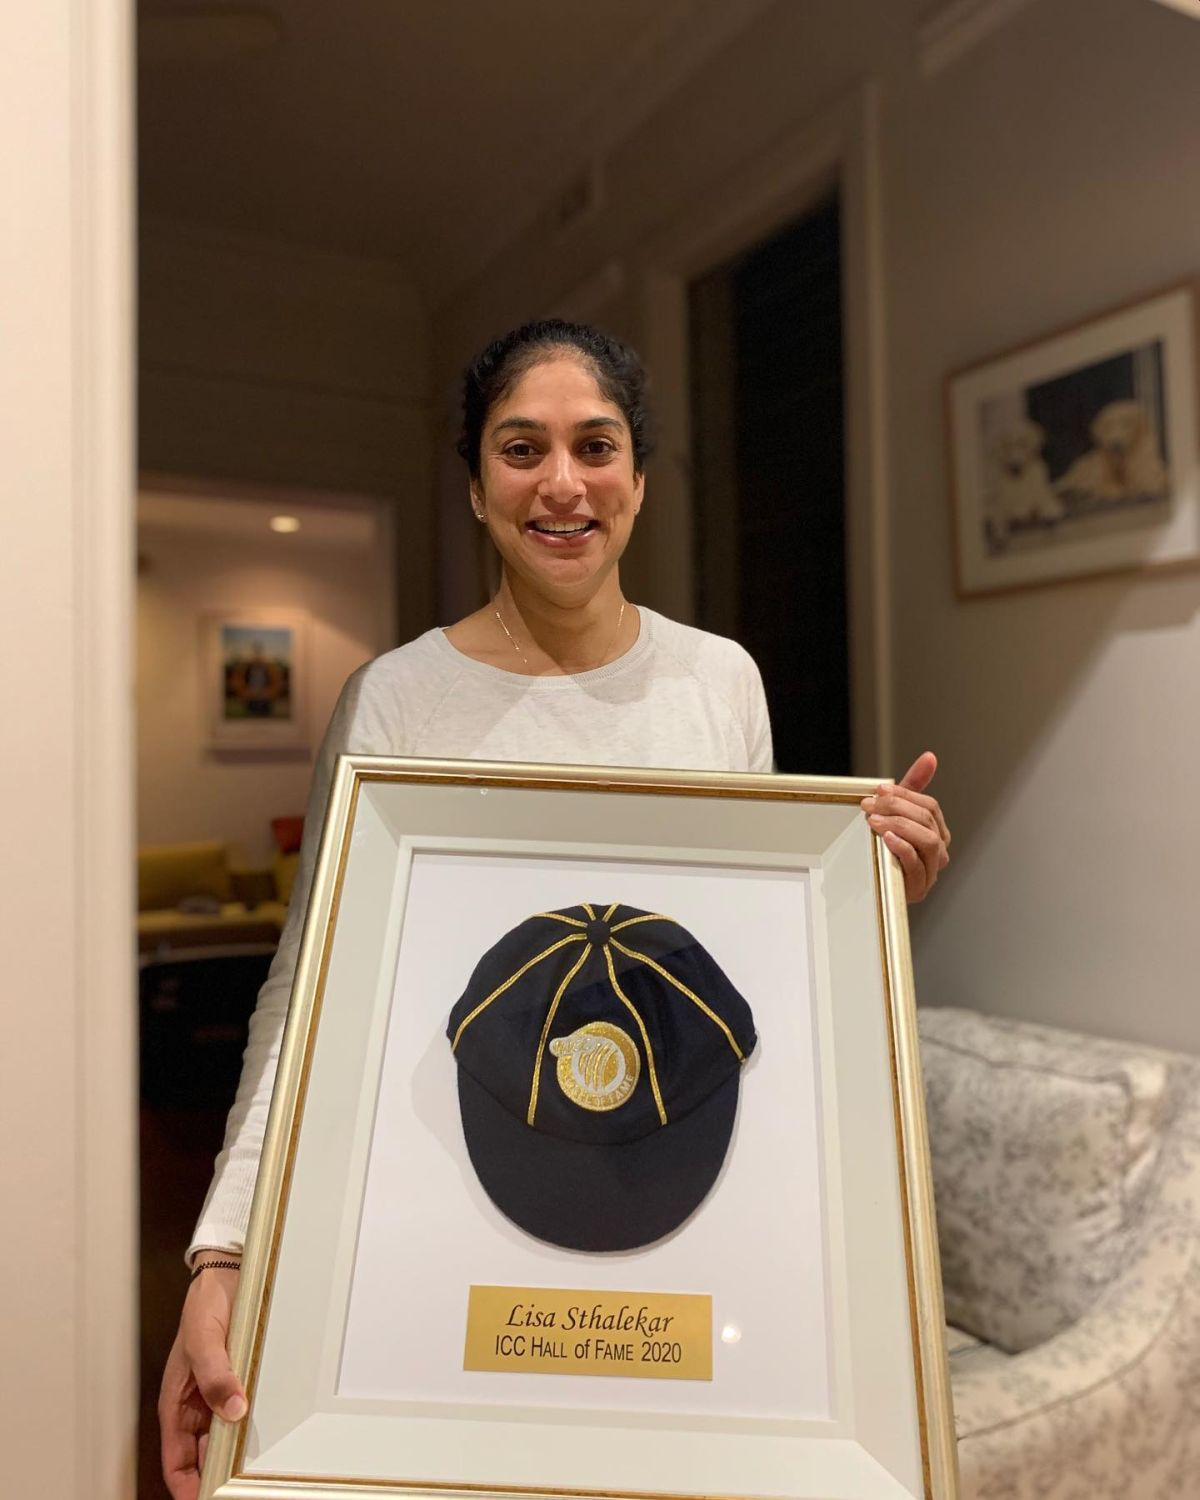 Lisa Sthalekar was inducted into the ICC Cricket Hall of Fame in August 2020.